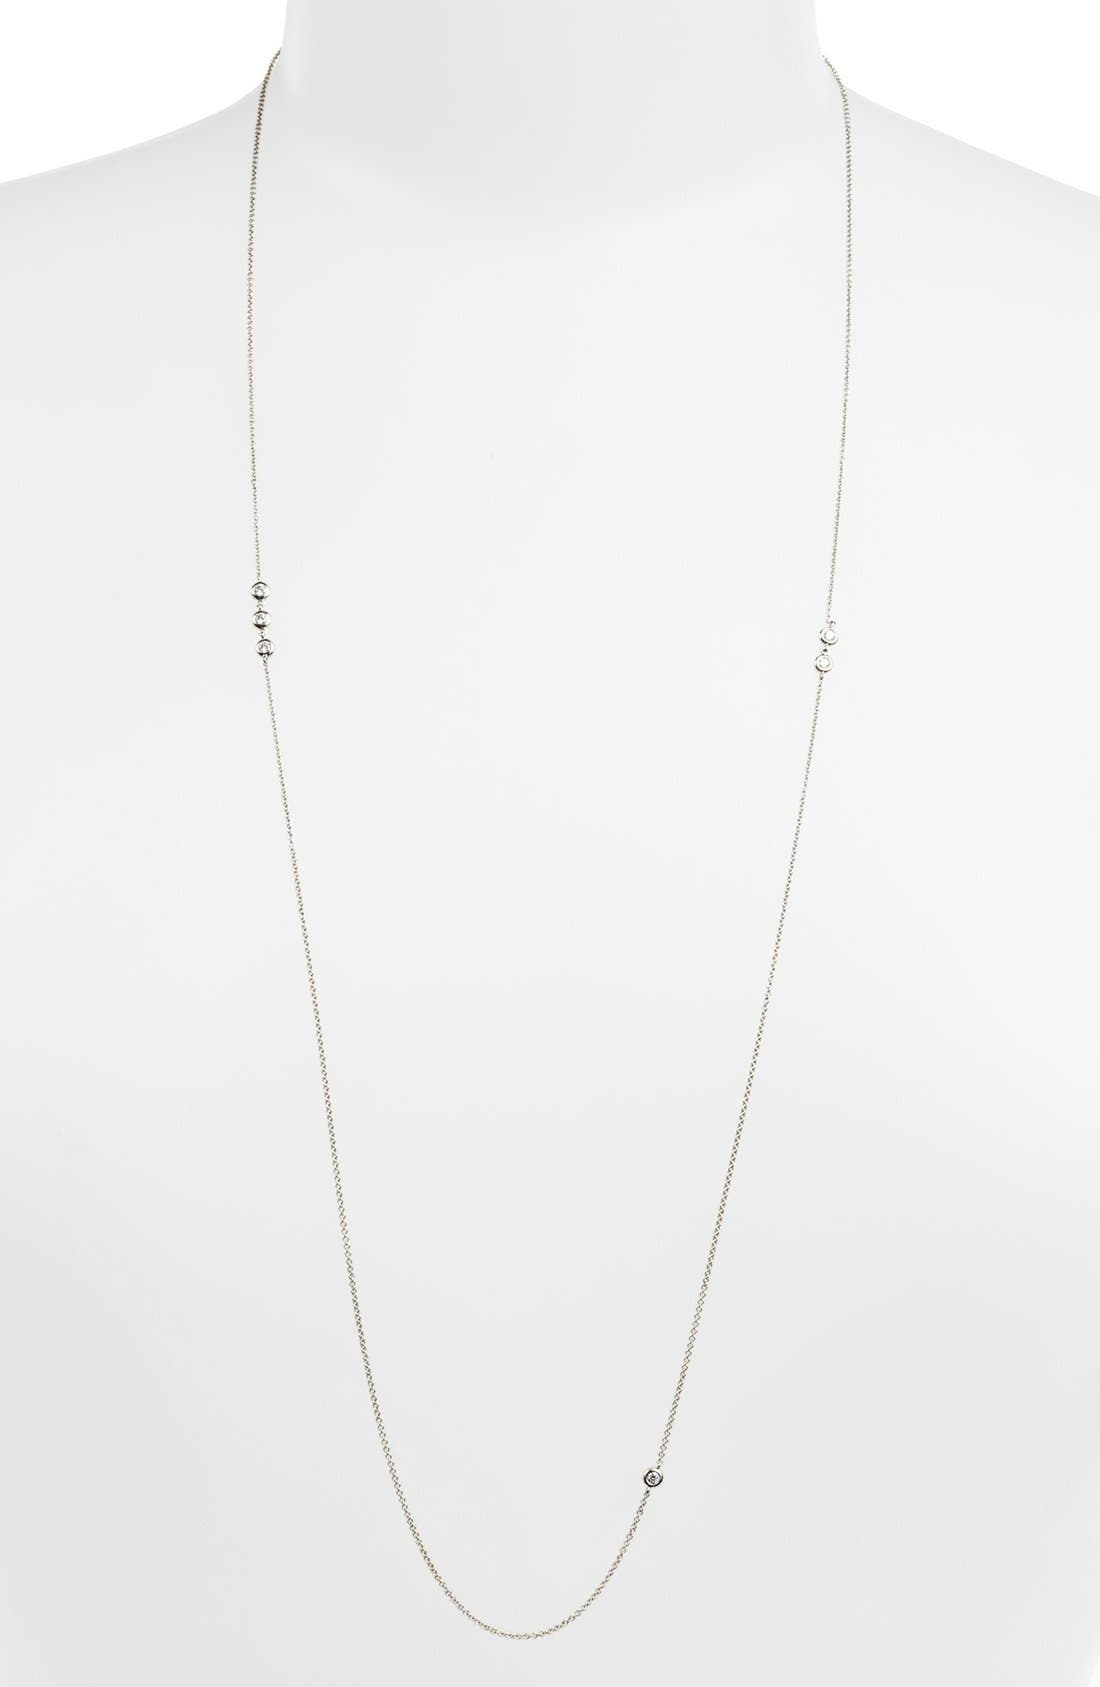 Main Image - Bony Levy 'Diamond by the Inch' Long Necklace (Nordstrom Exclusive)